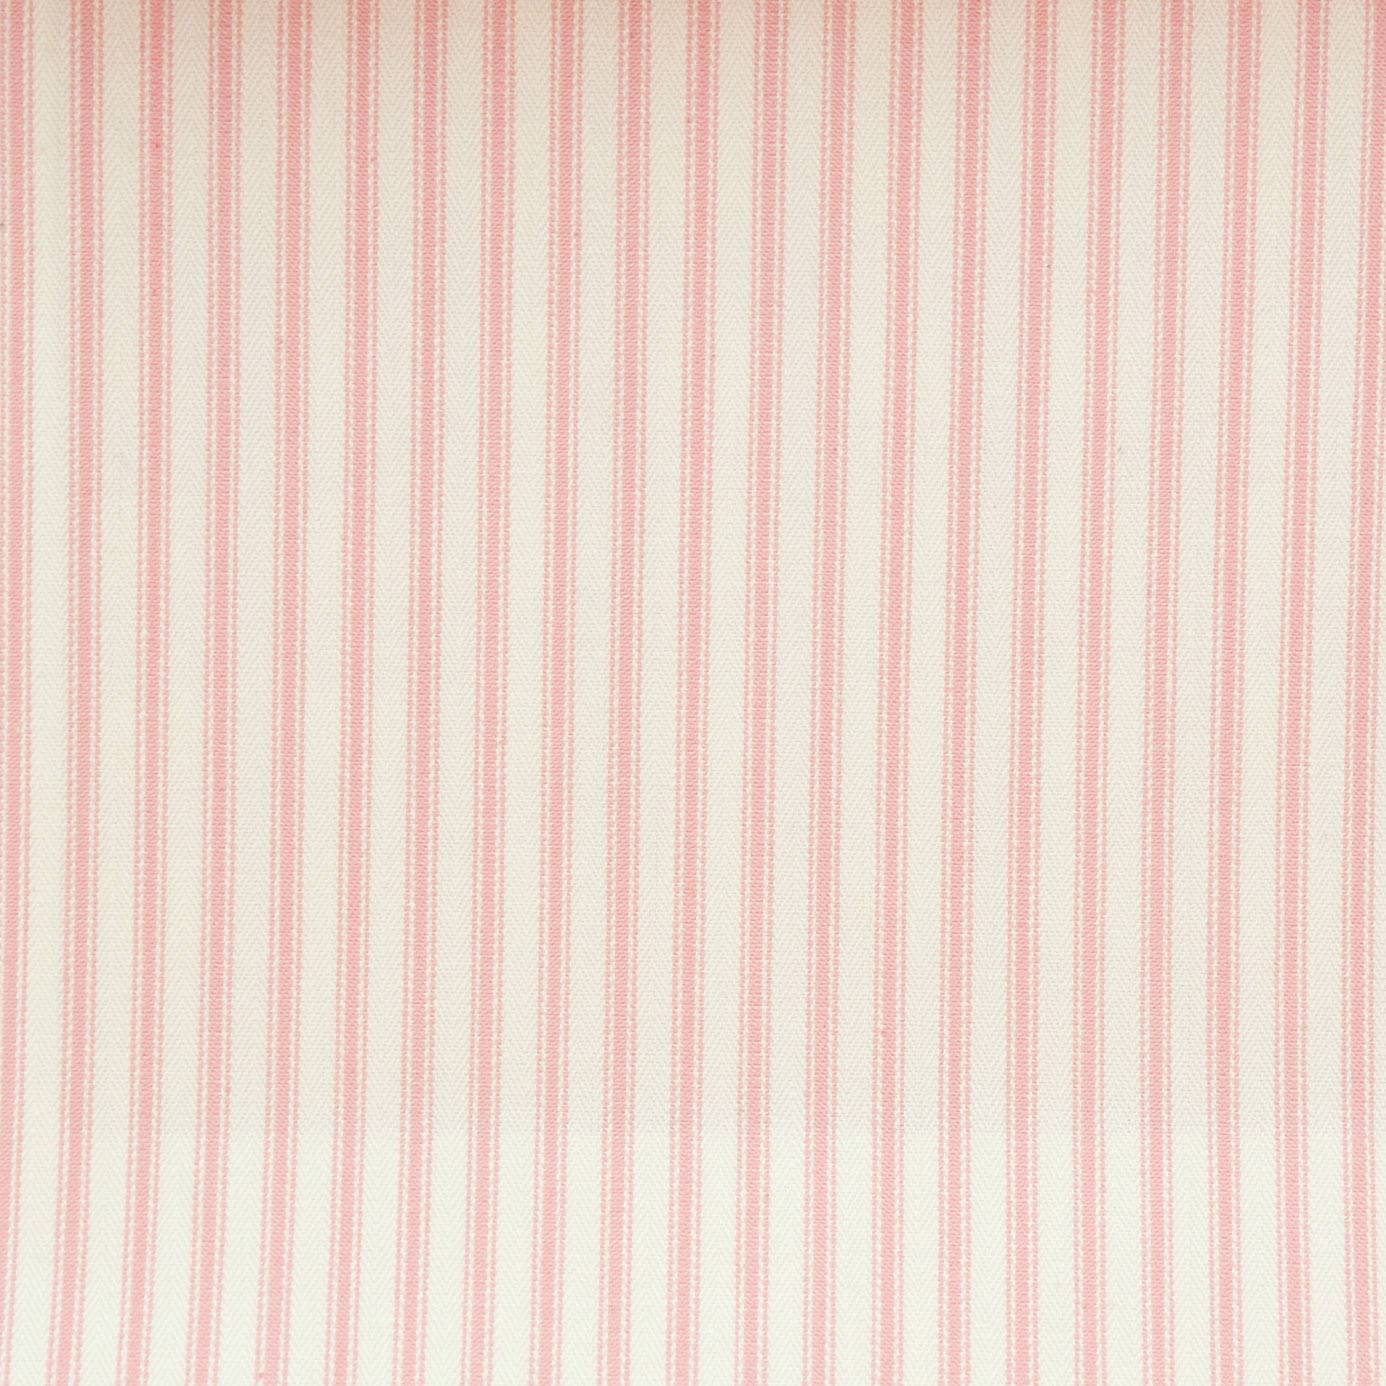 Sutton fabric pink f0420 05 clarke clarke ticking for Ticking fabric